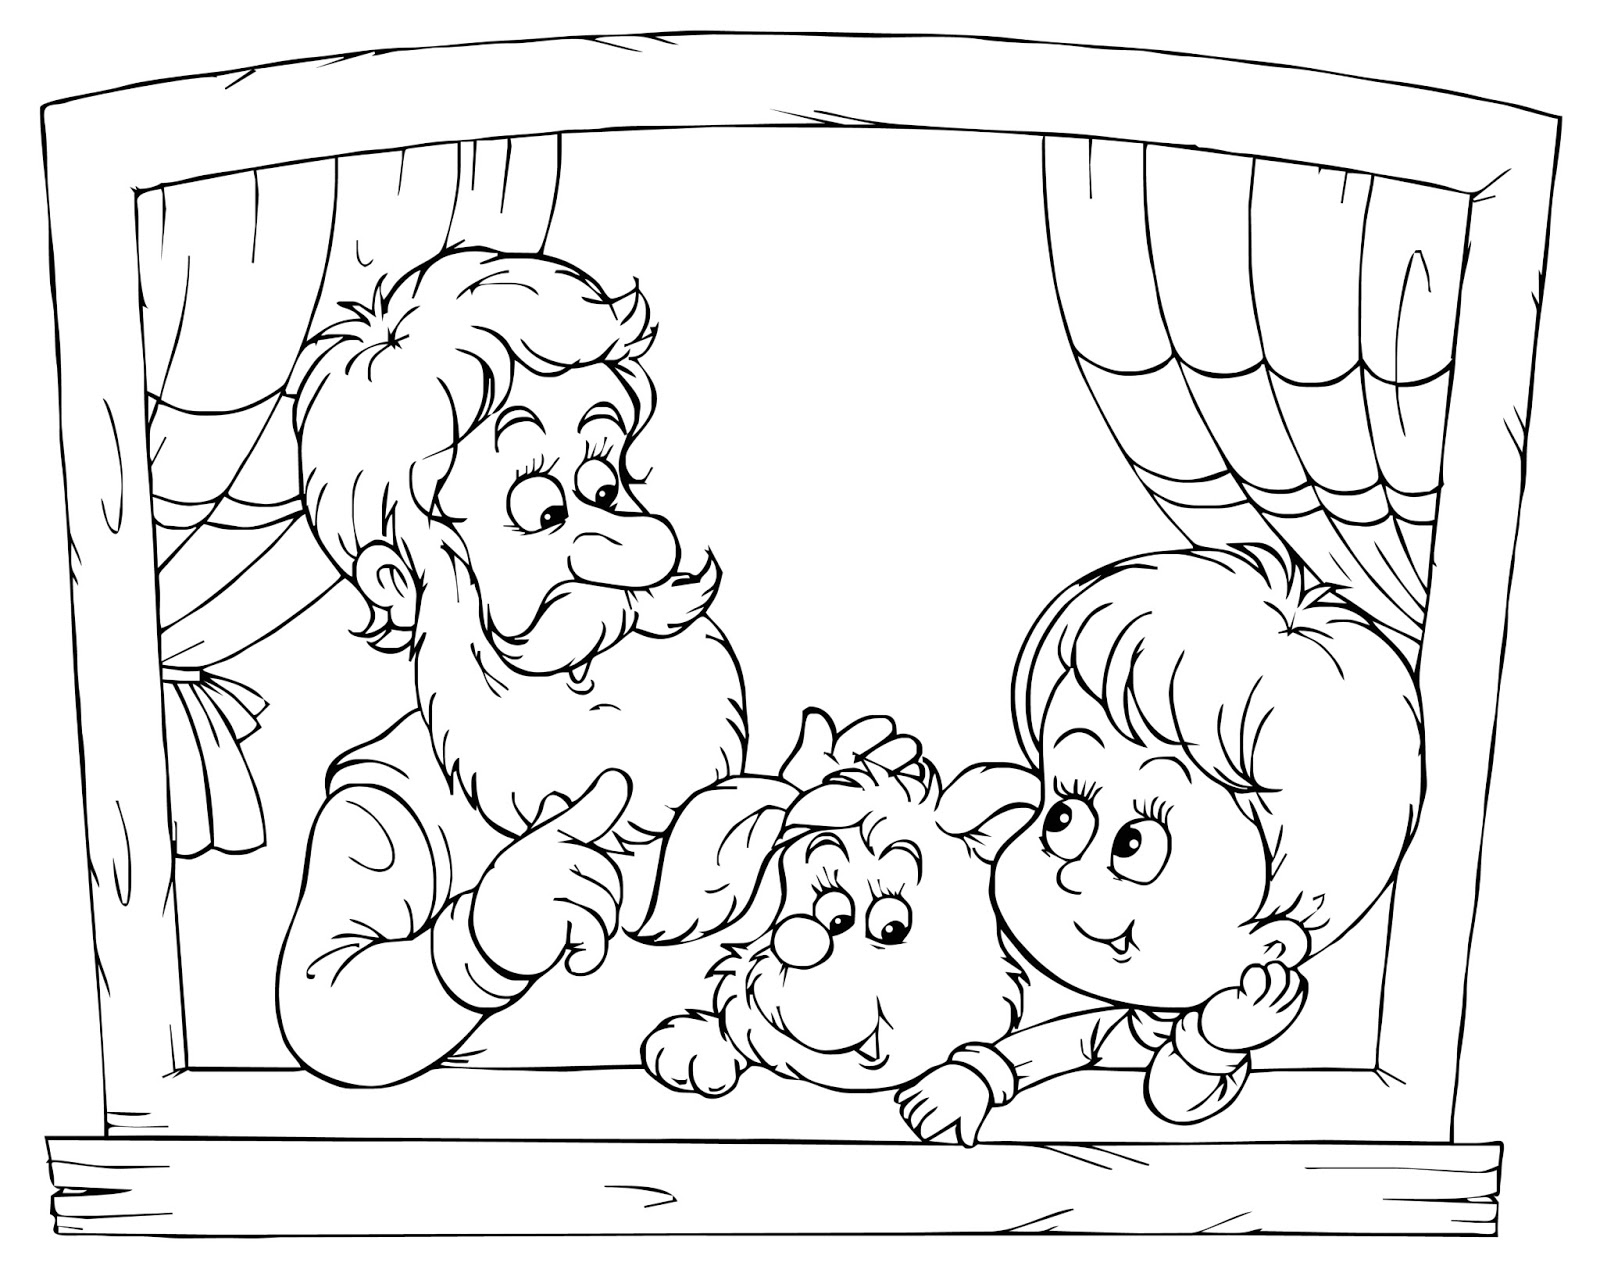 coloring page for kids printable coloring pages for kids coloring pages for kids for coloring page kids